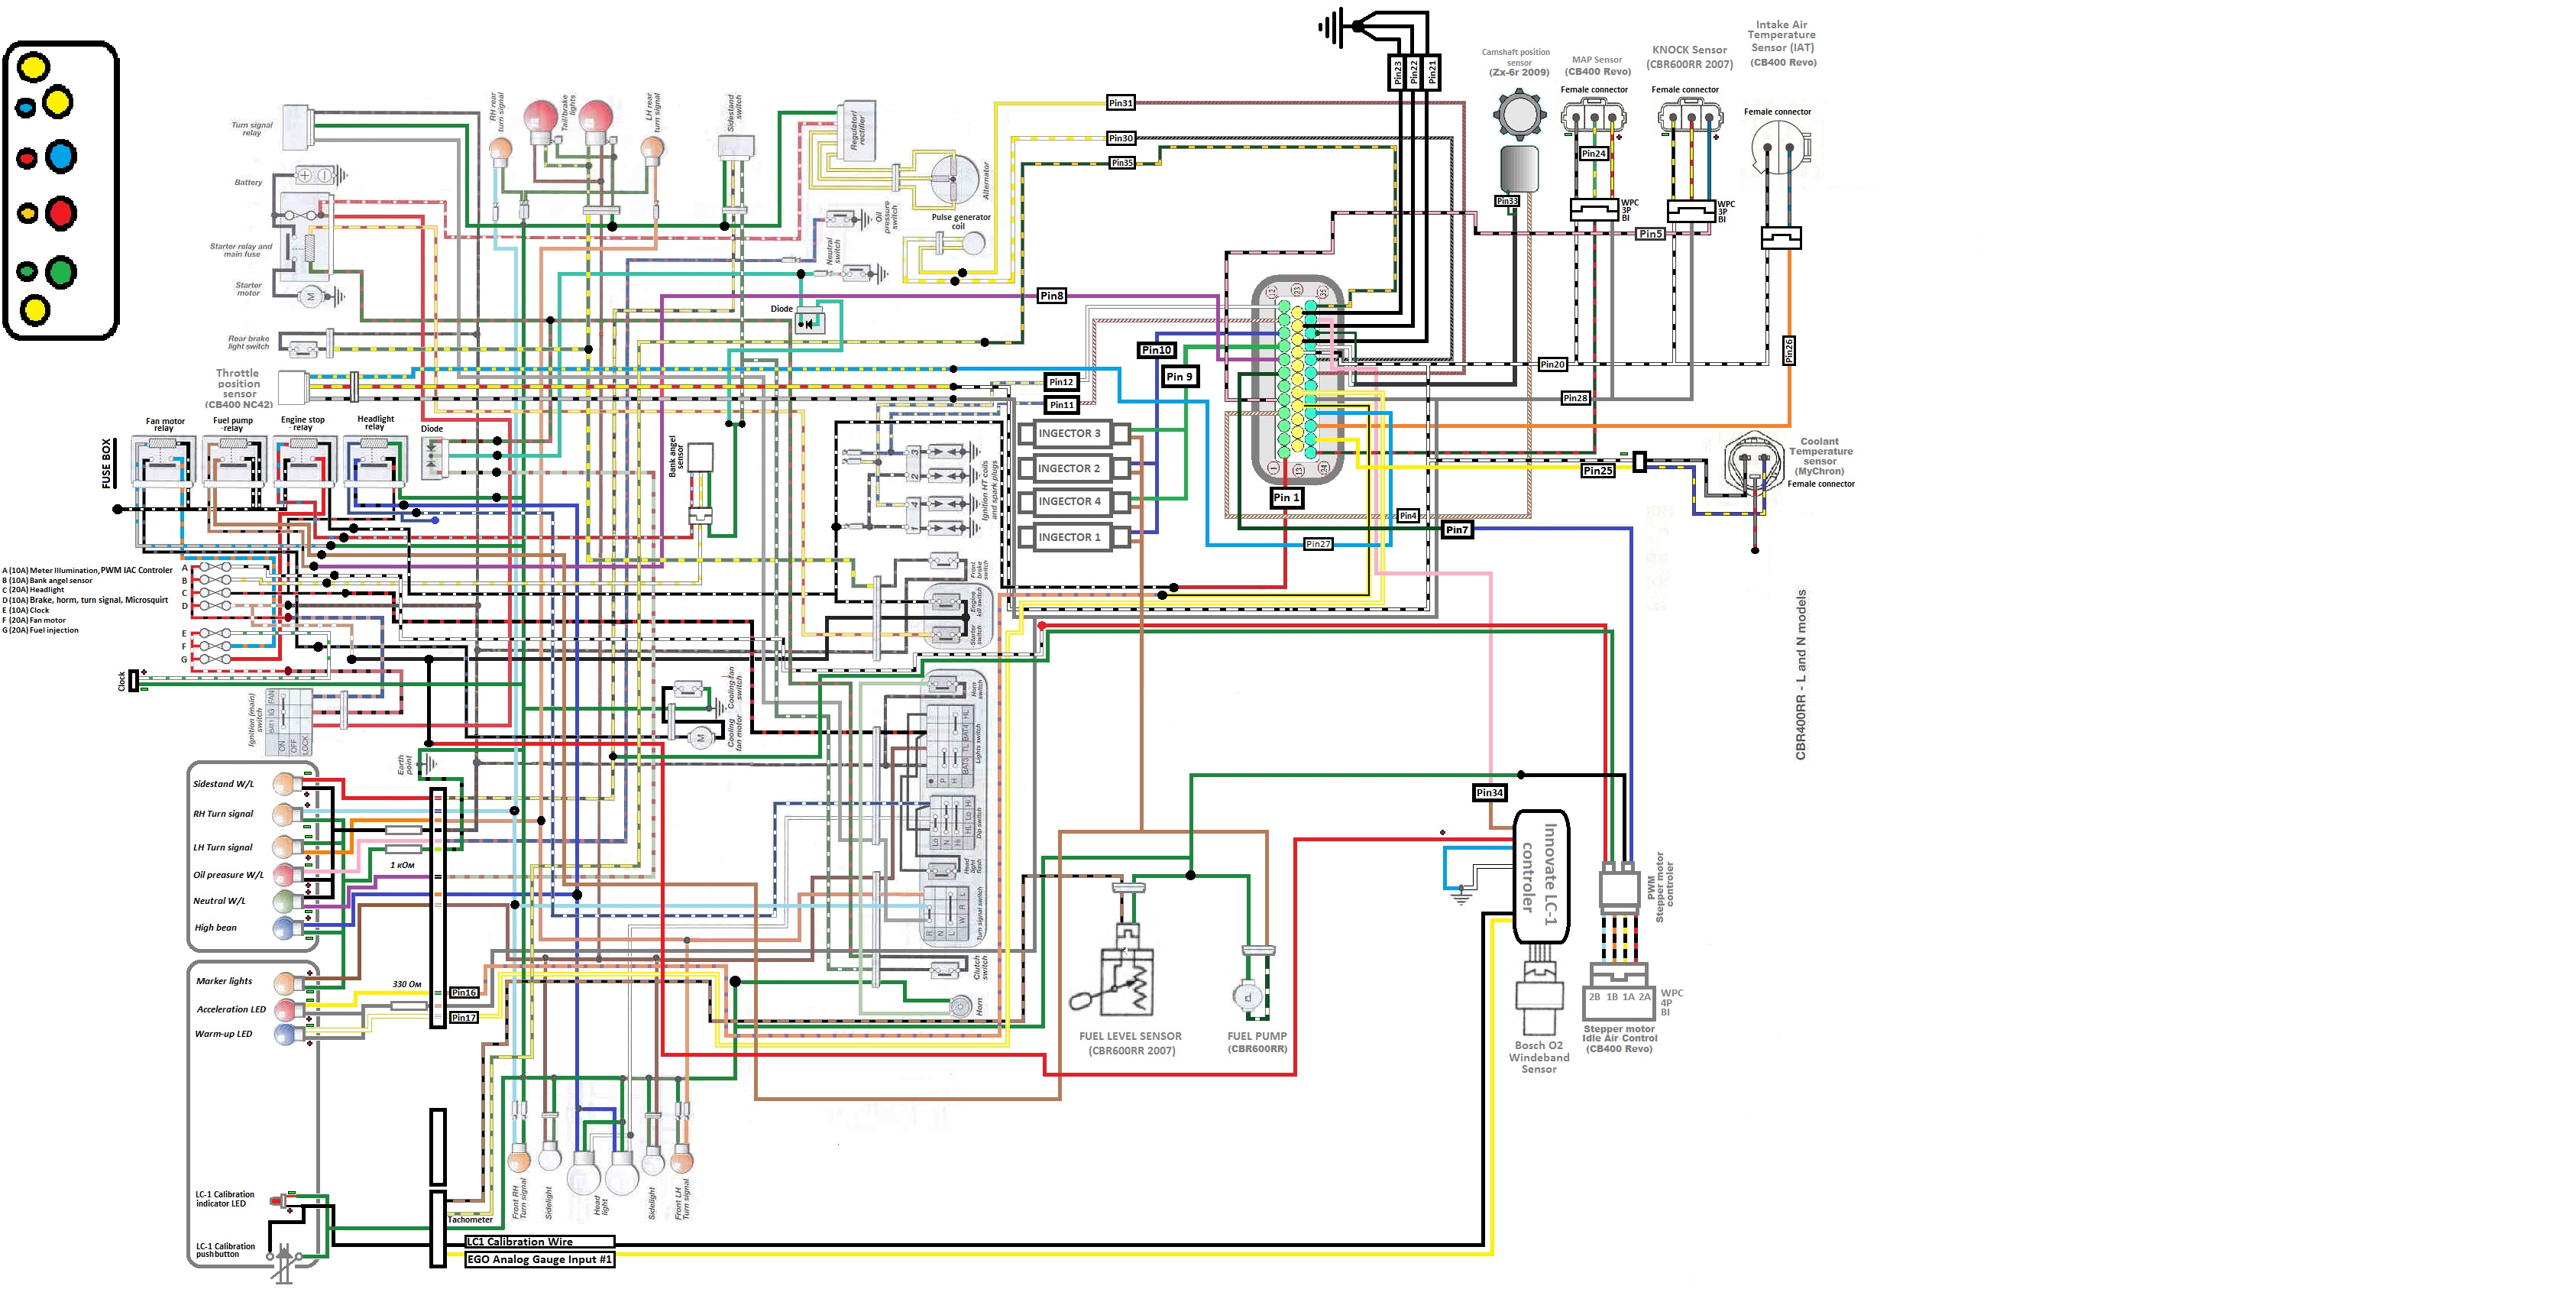 Honda Steed Wiring Diagram And Schematics Ca95 400 Images Gallery